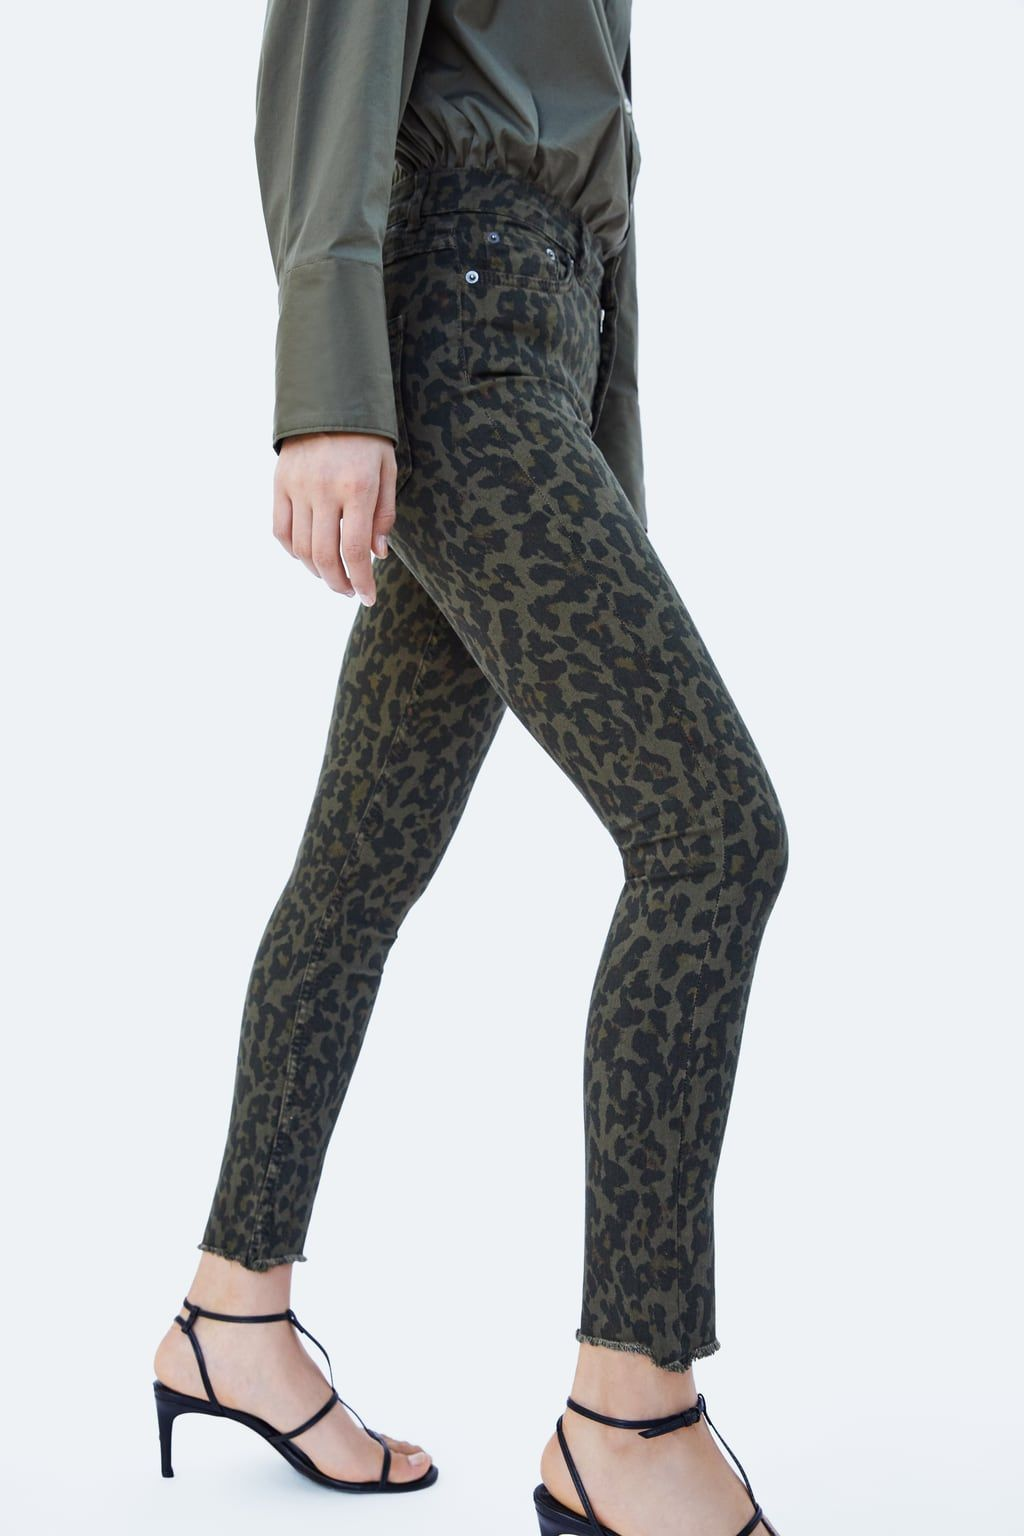 ee6a6fad Image 4 of HIGH-WAISTED PREMIUM ZW LEOPARD PRINT JEANS from Zara ...